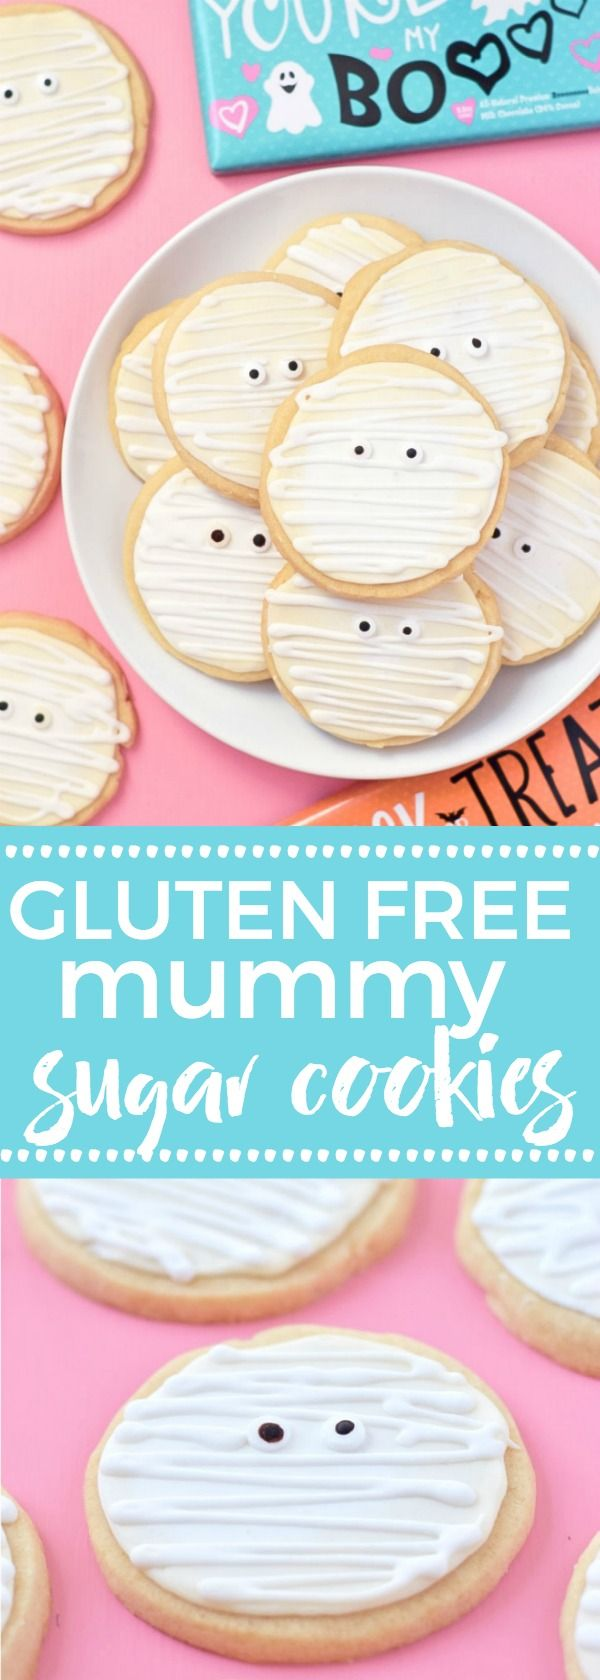 Gluten Free Mummy Cookies are a fun treat for Halloween parties. Made with gluten free and dairy free sugar cookies and an easy royal icing for decorating. Recipe from @whattheforkblog | whattheforkfoodblog.com